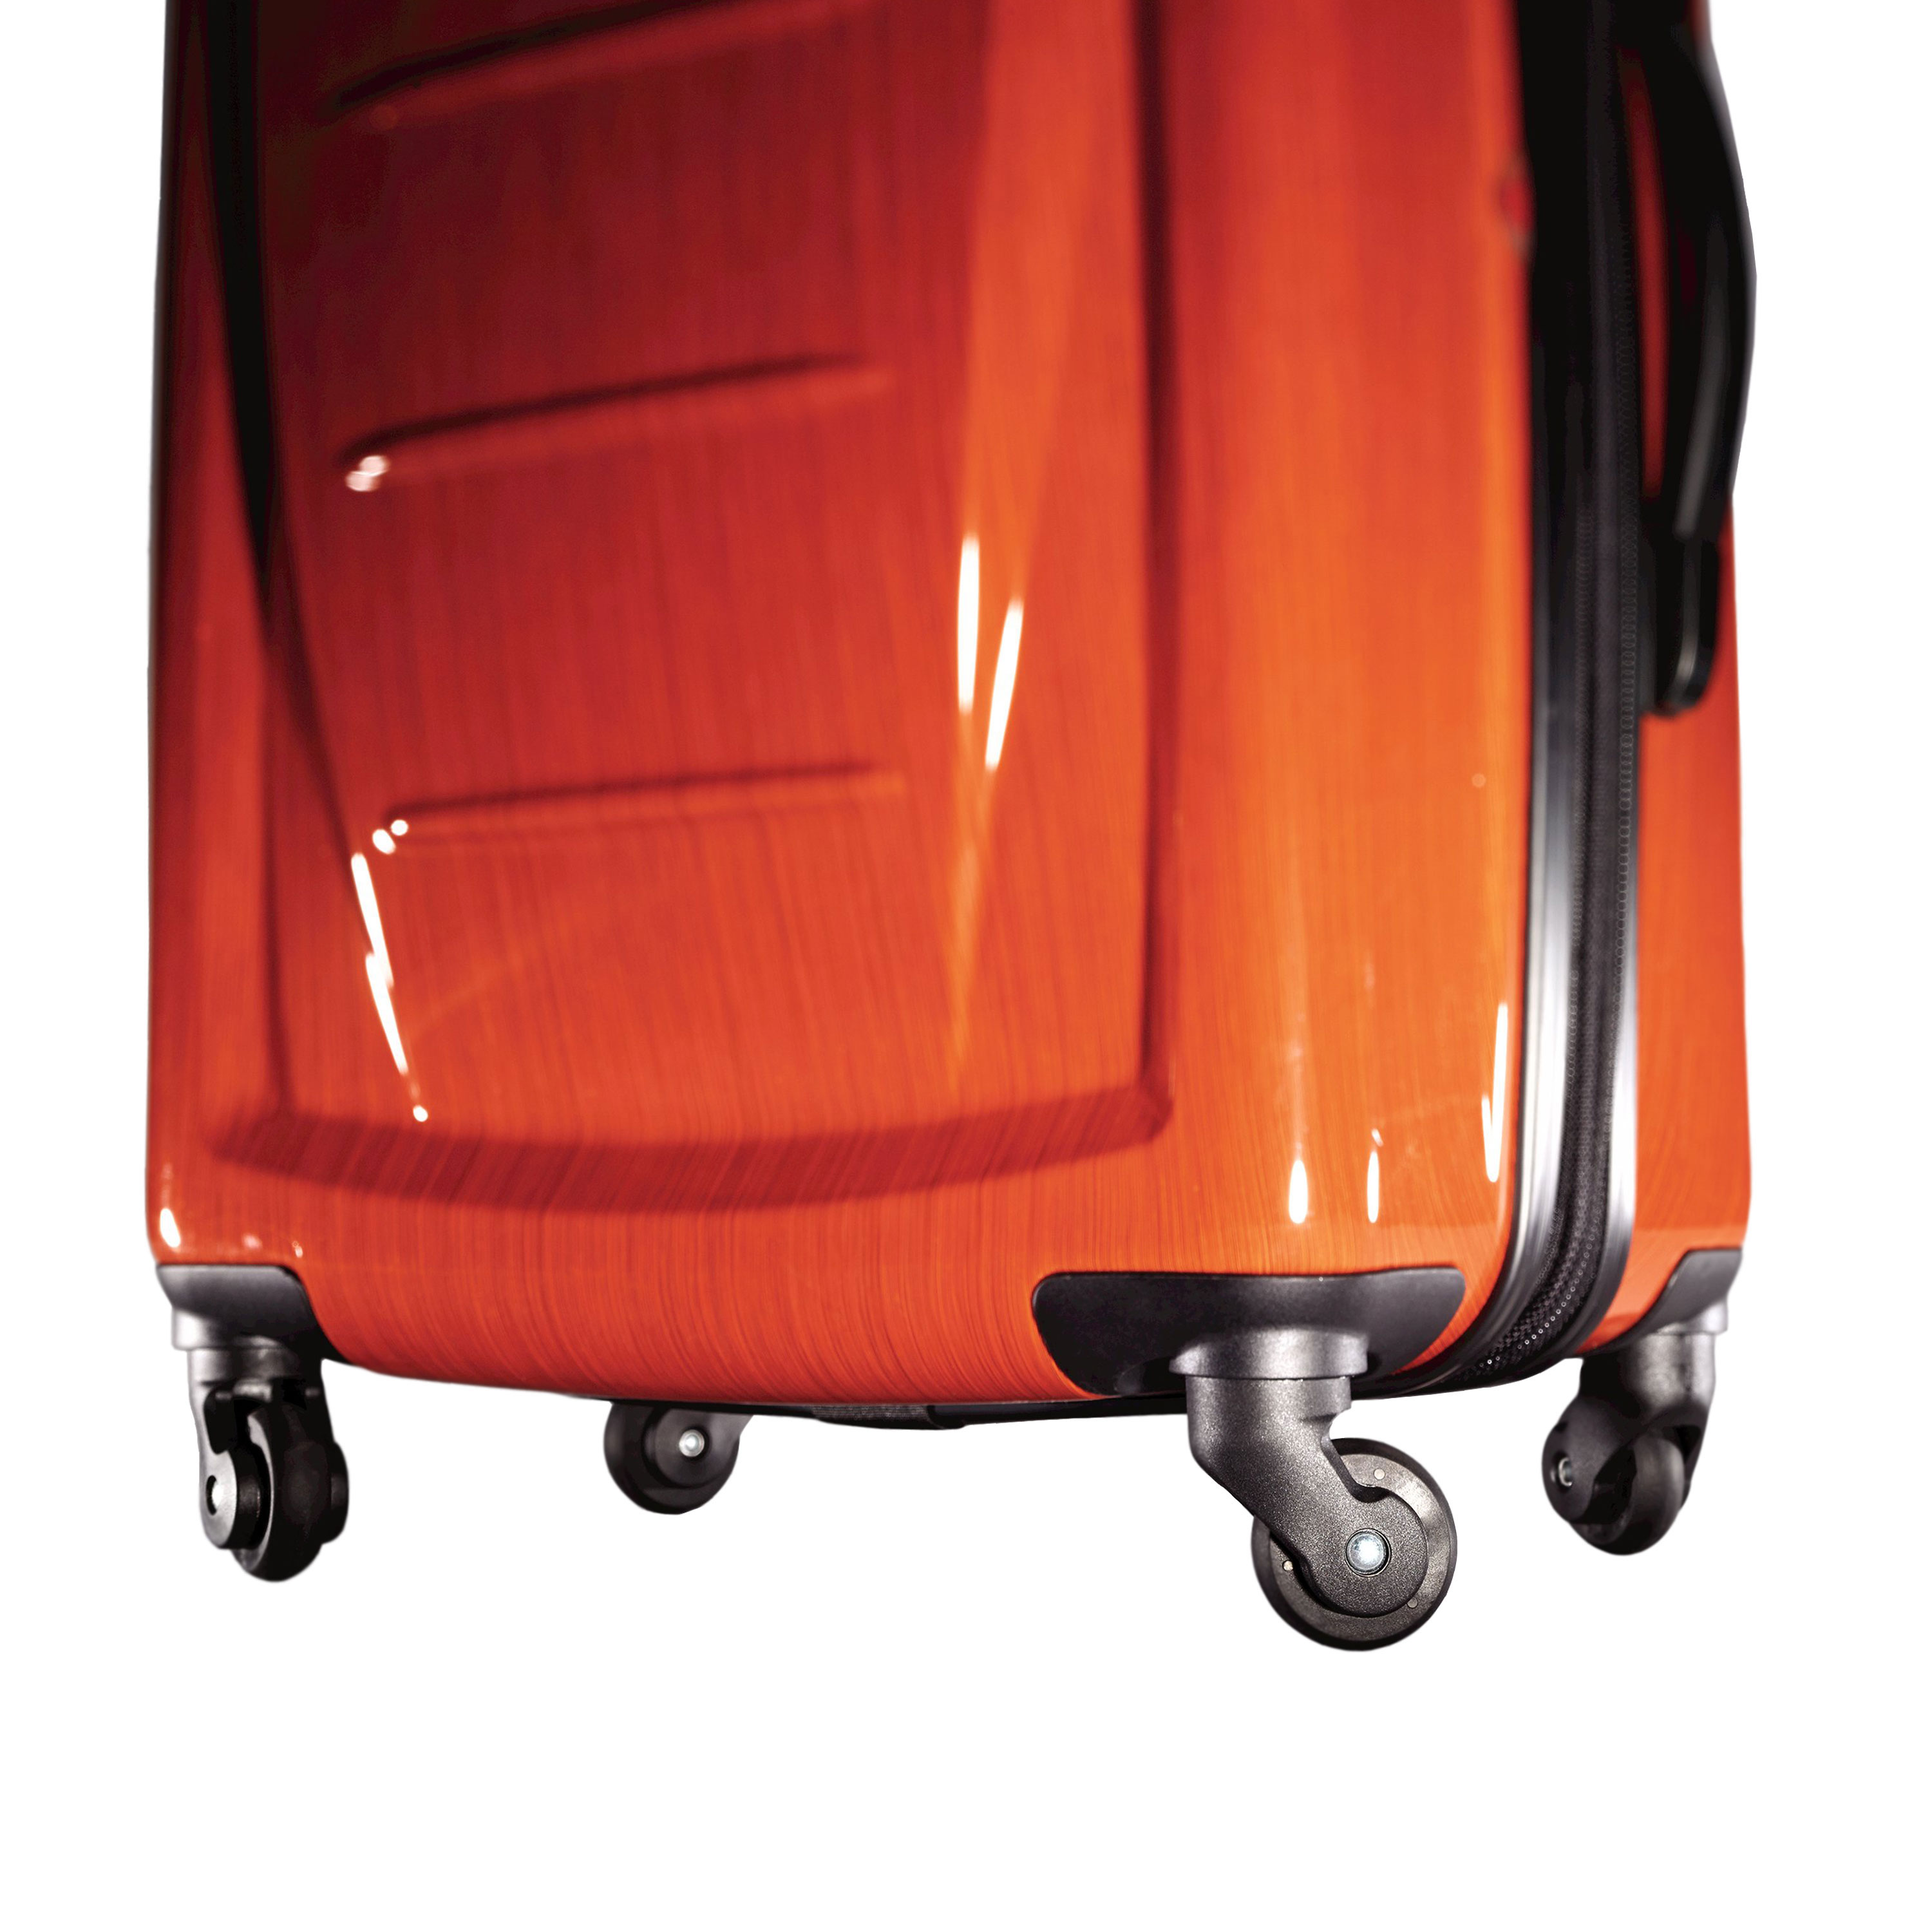 Samsonite-Winfield-2-Fashion-Spinner-Luggage thumbnail 32